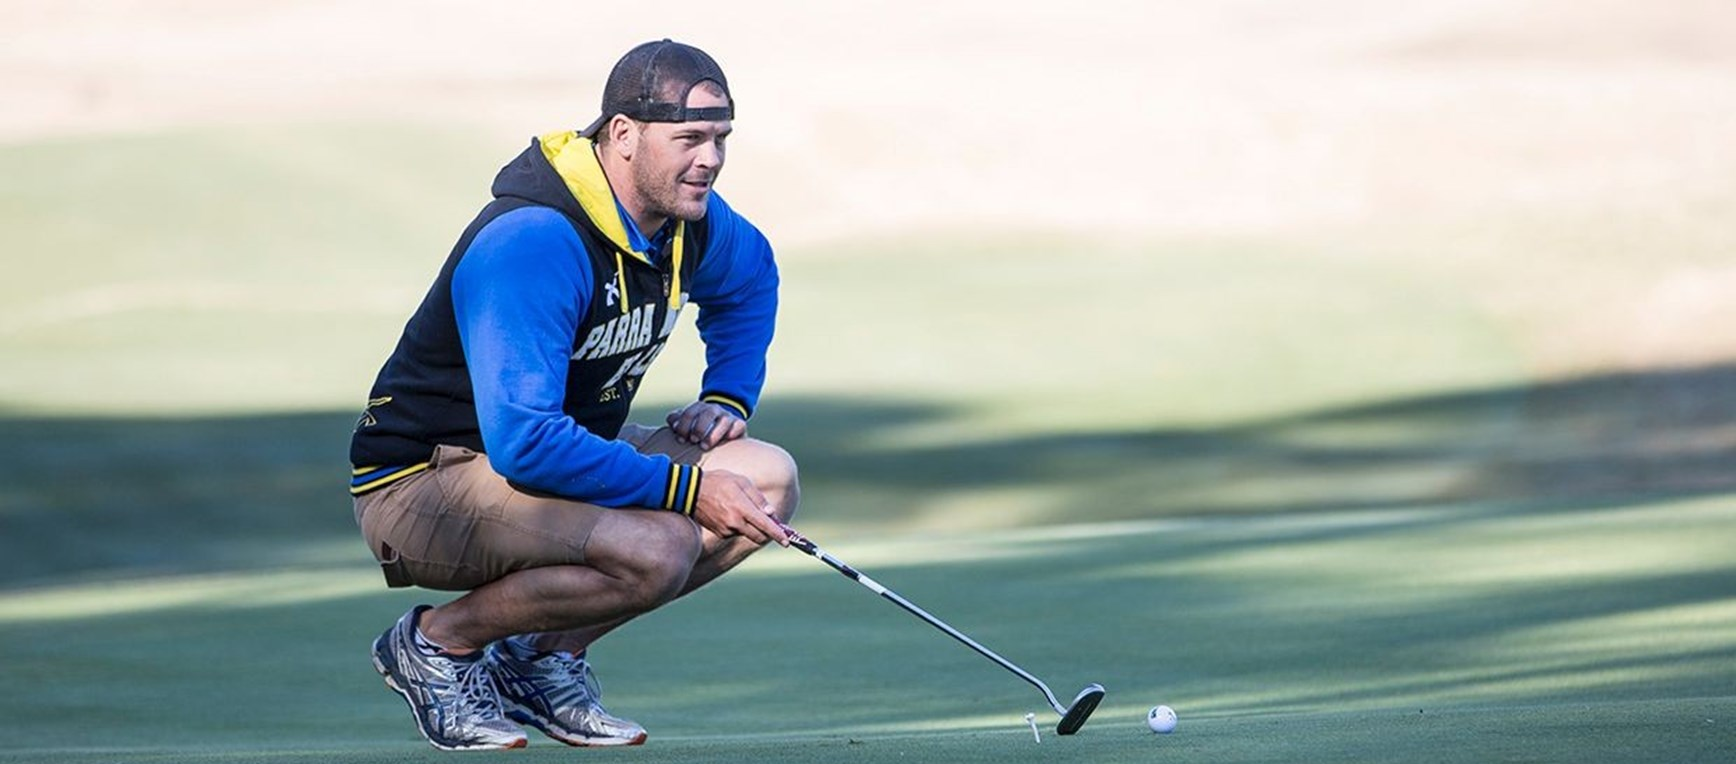 GALLERY | 2016 Corporate Golf Day